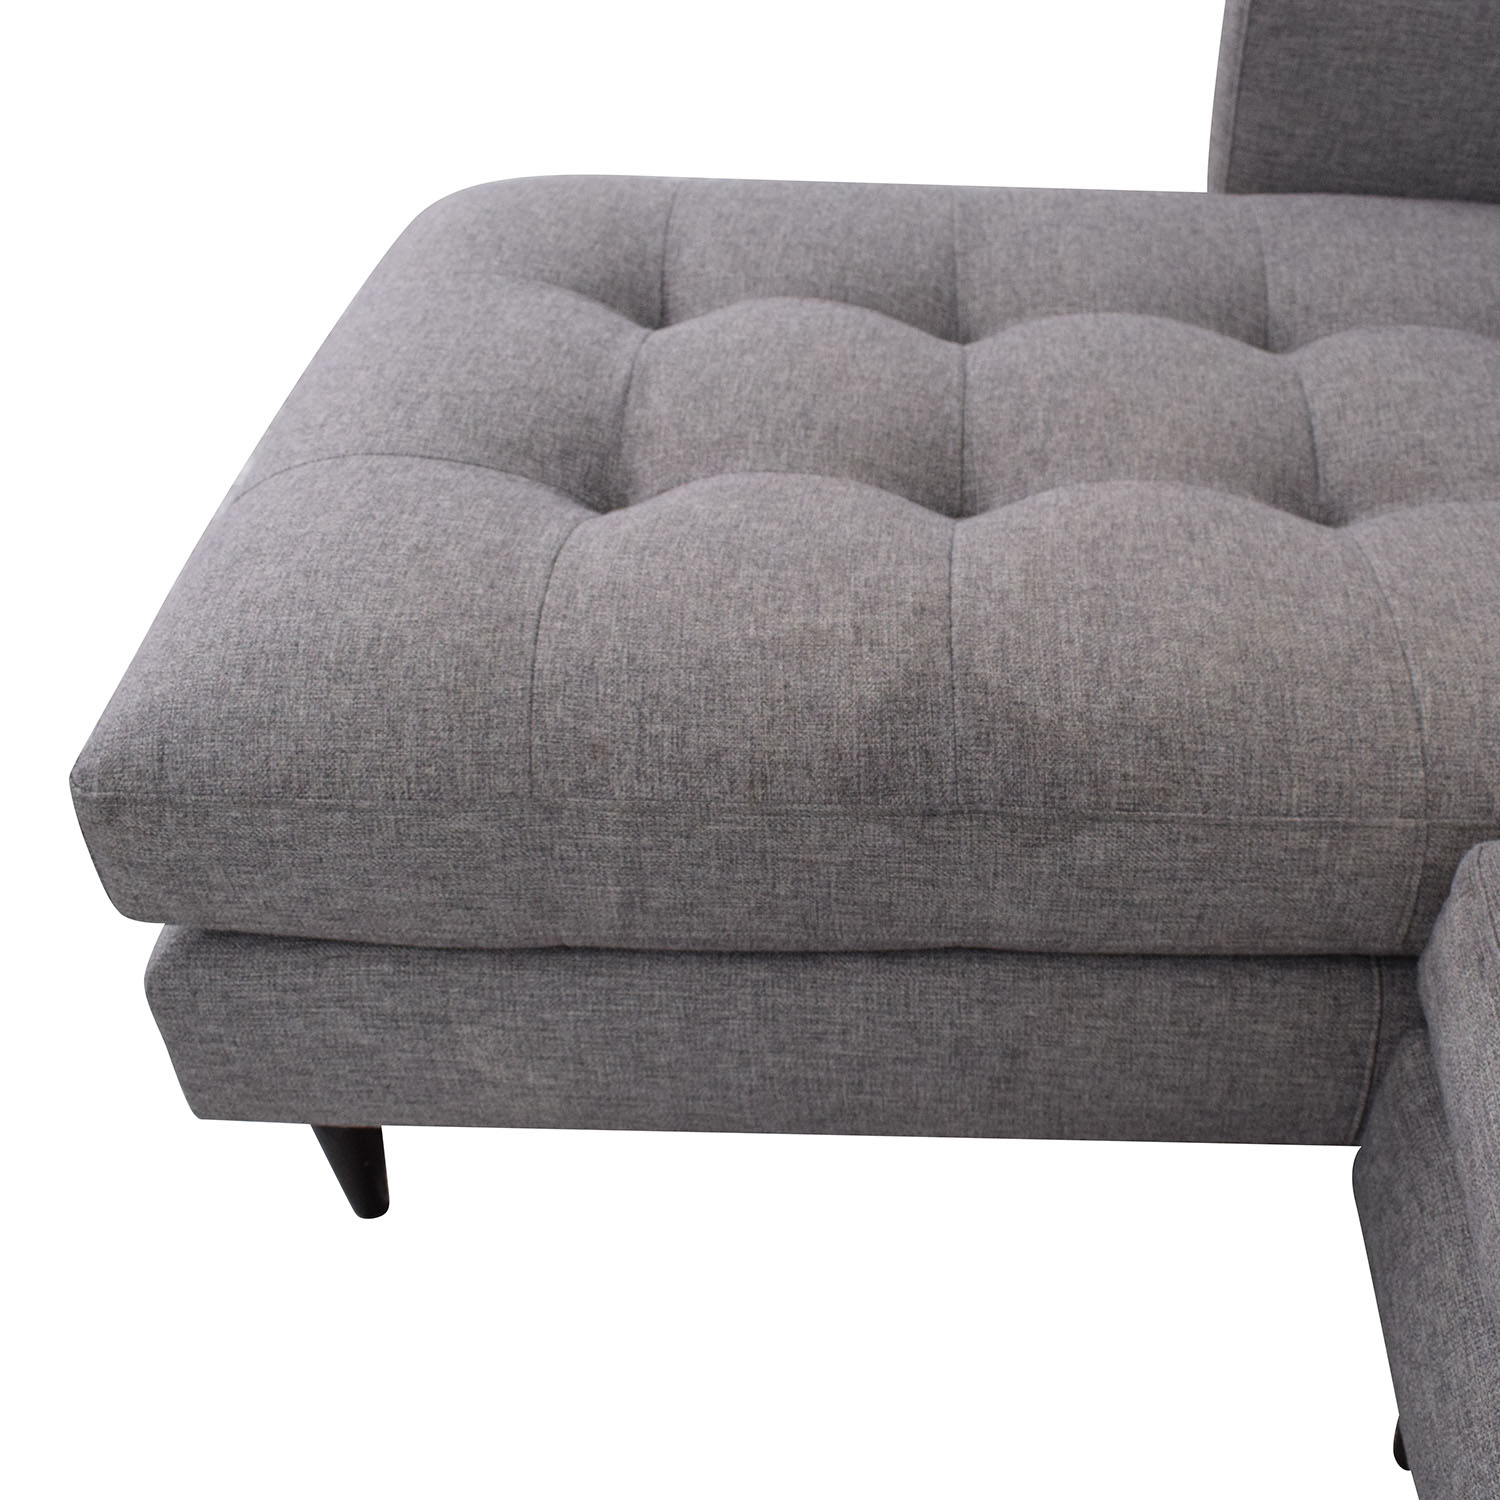 Crate & Barrel Crate & Barrel Petrie Mid Century Sectional Sofa with Chaise